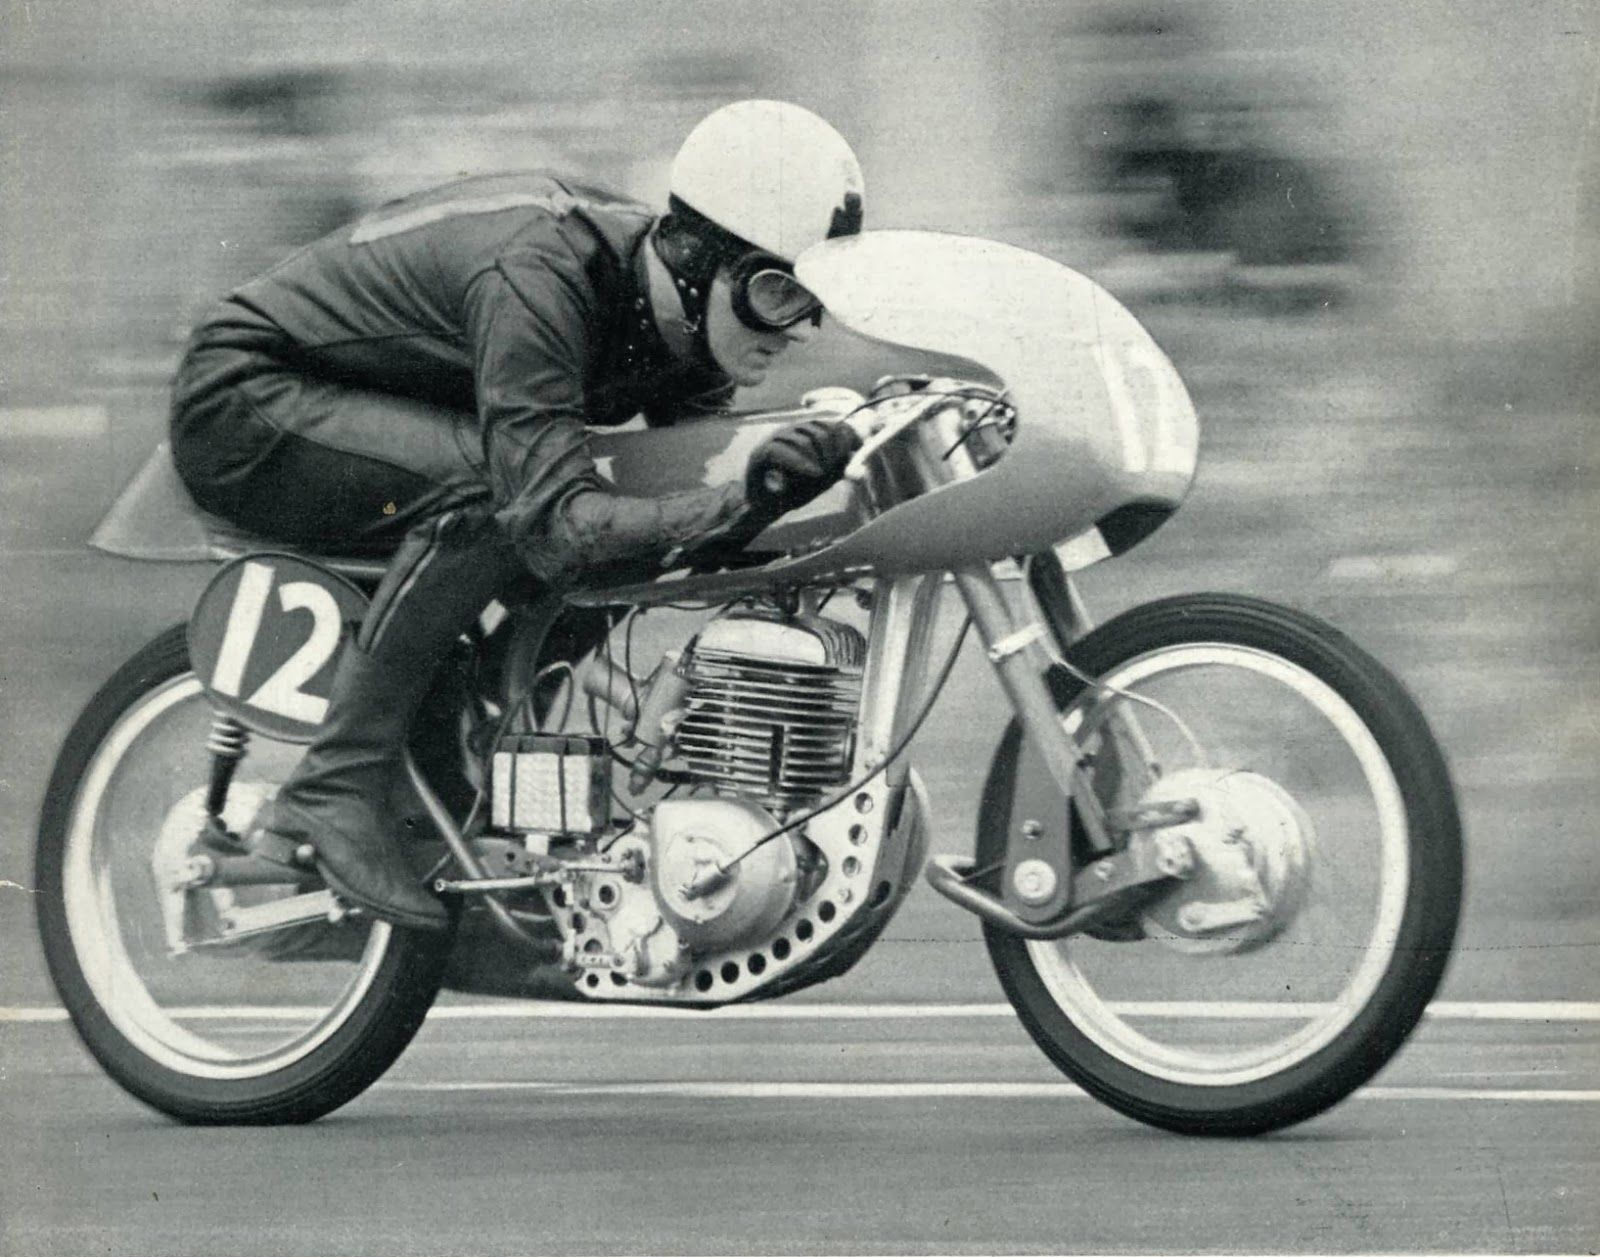 17 best images about motorcycles grand prix racing joe dunphy on his greeves silverstone at the 1963 meeting at mallory park motorcycles diariesracing